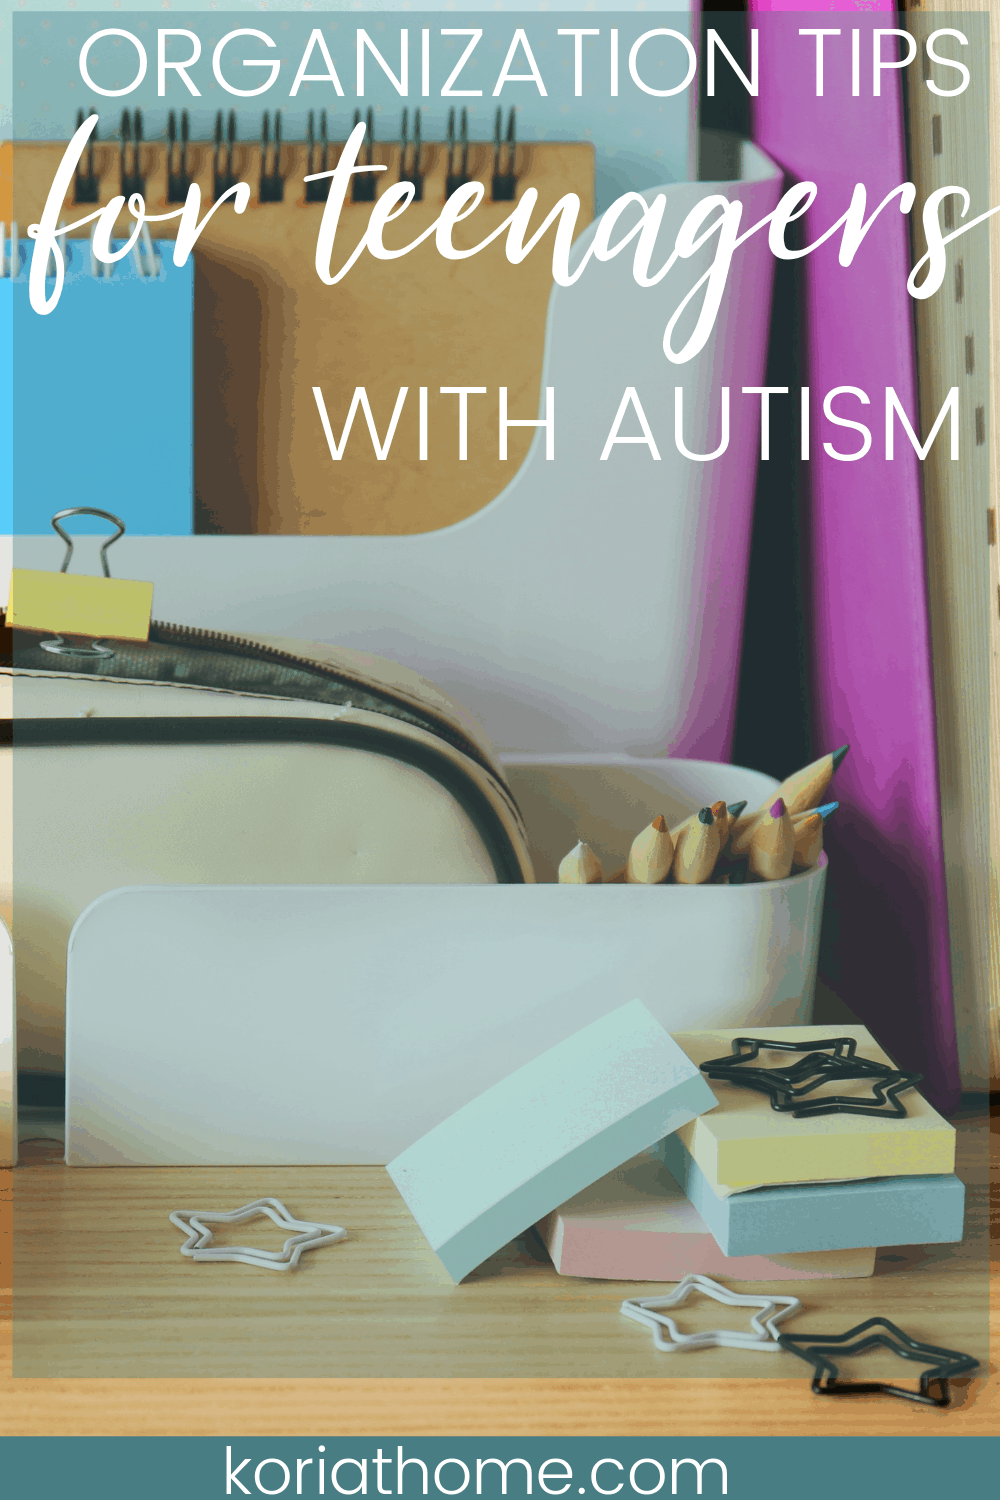 15 Sensible Organization Tips for Teenagers with Autism 1